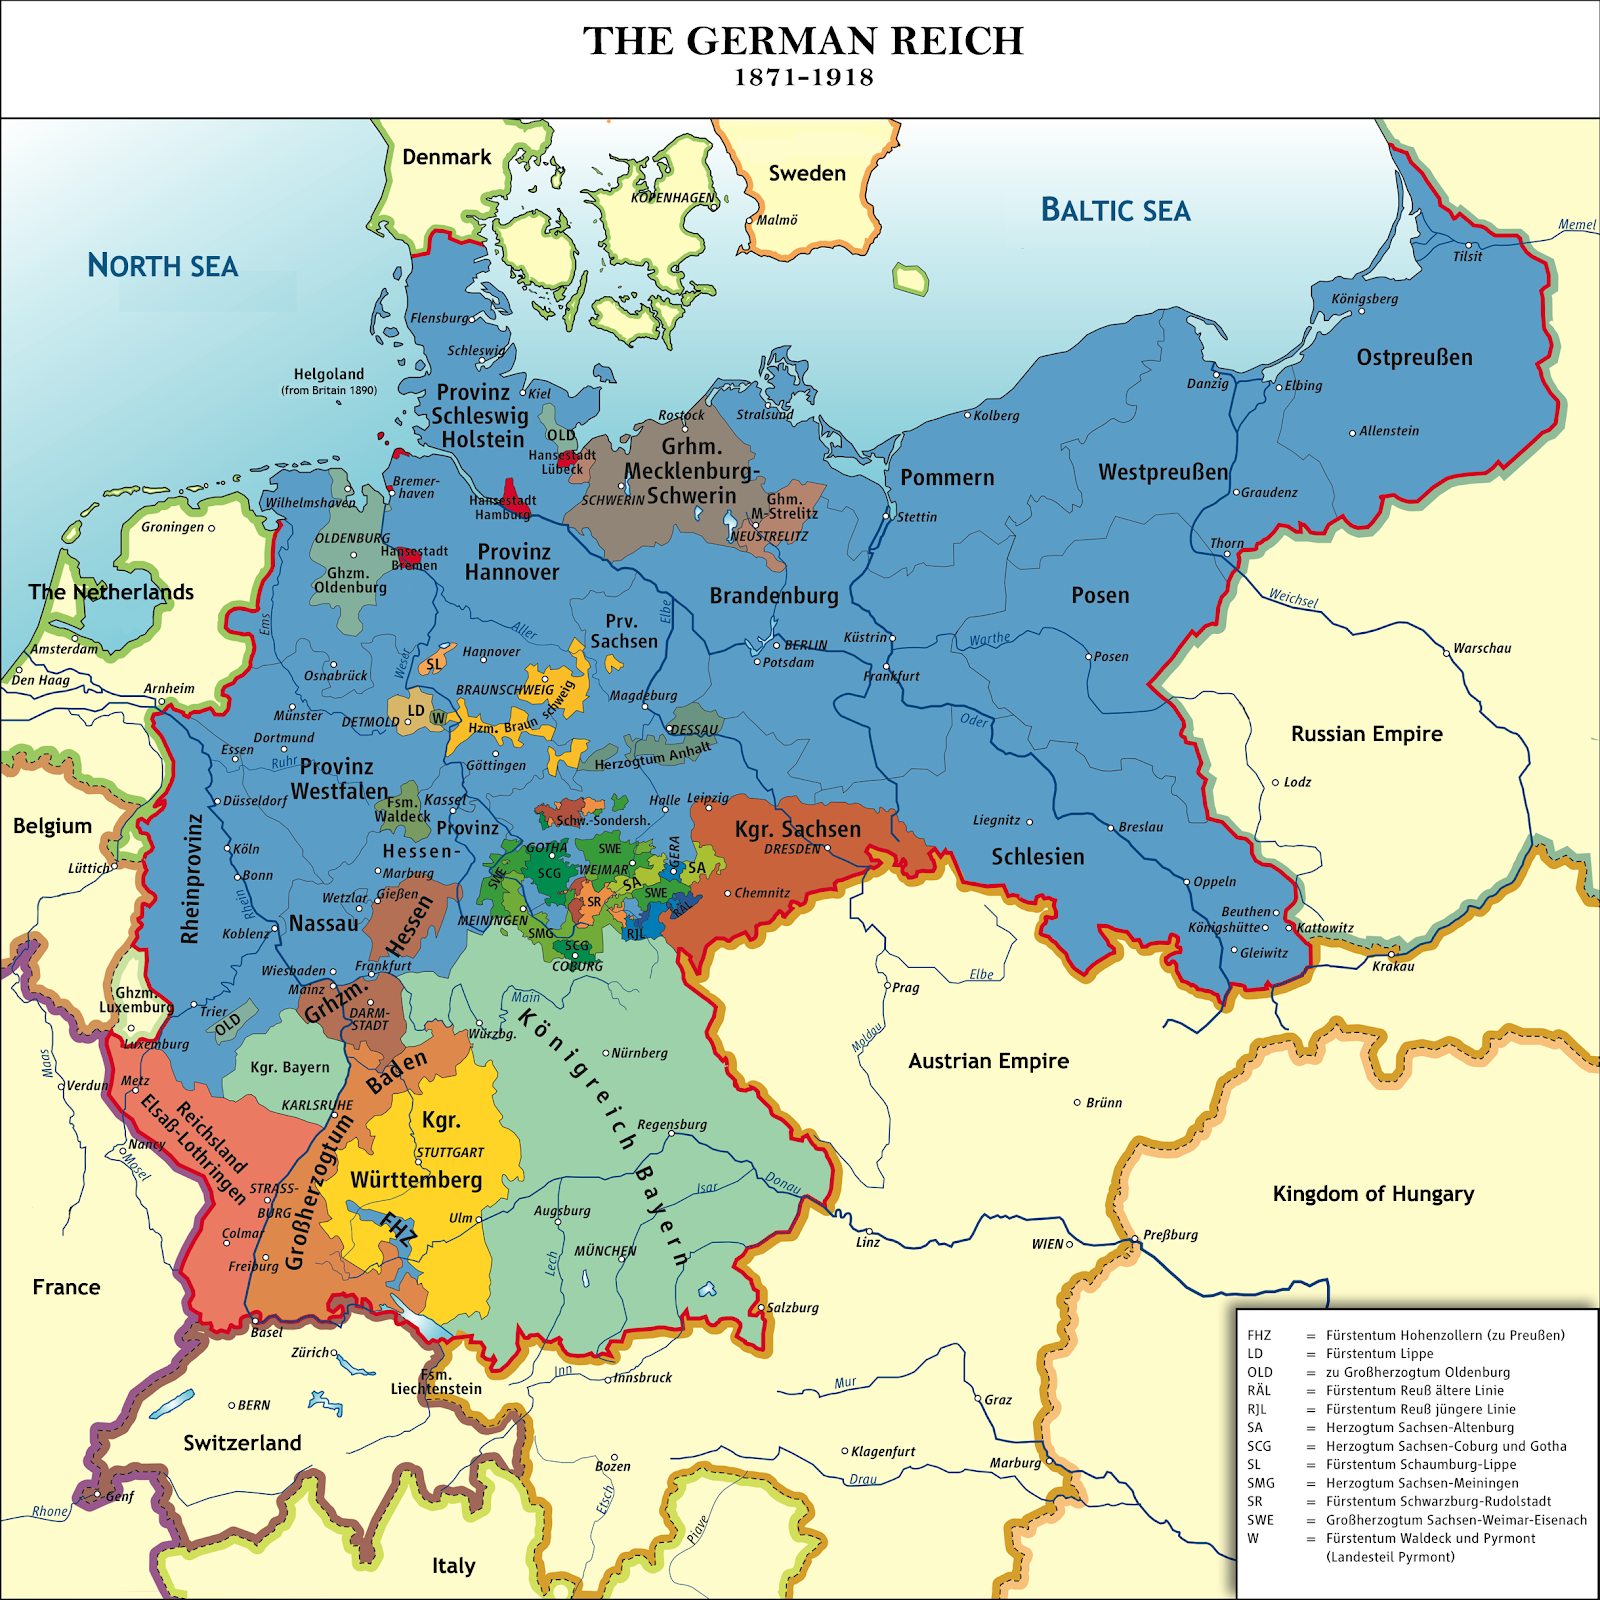 Map of Germany after unification.